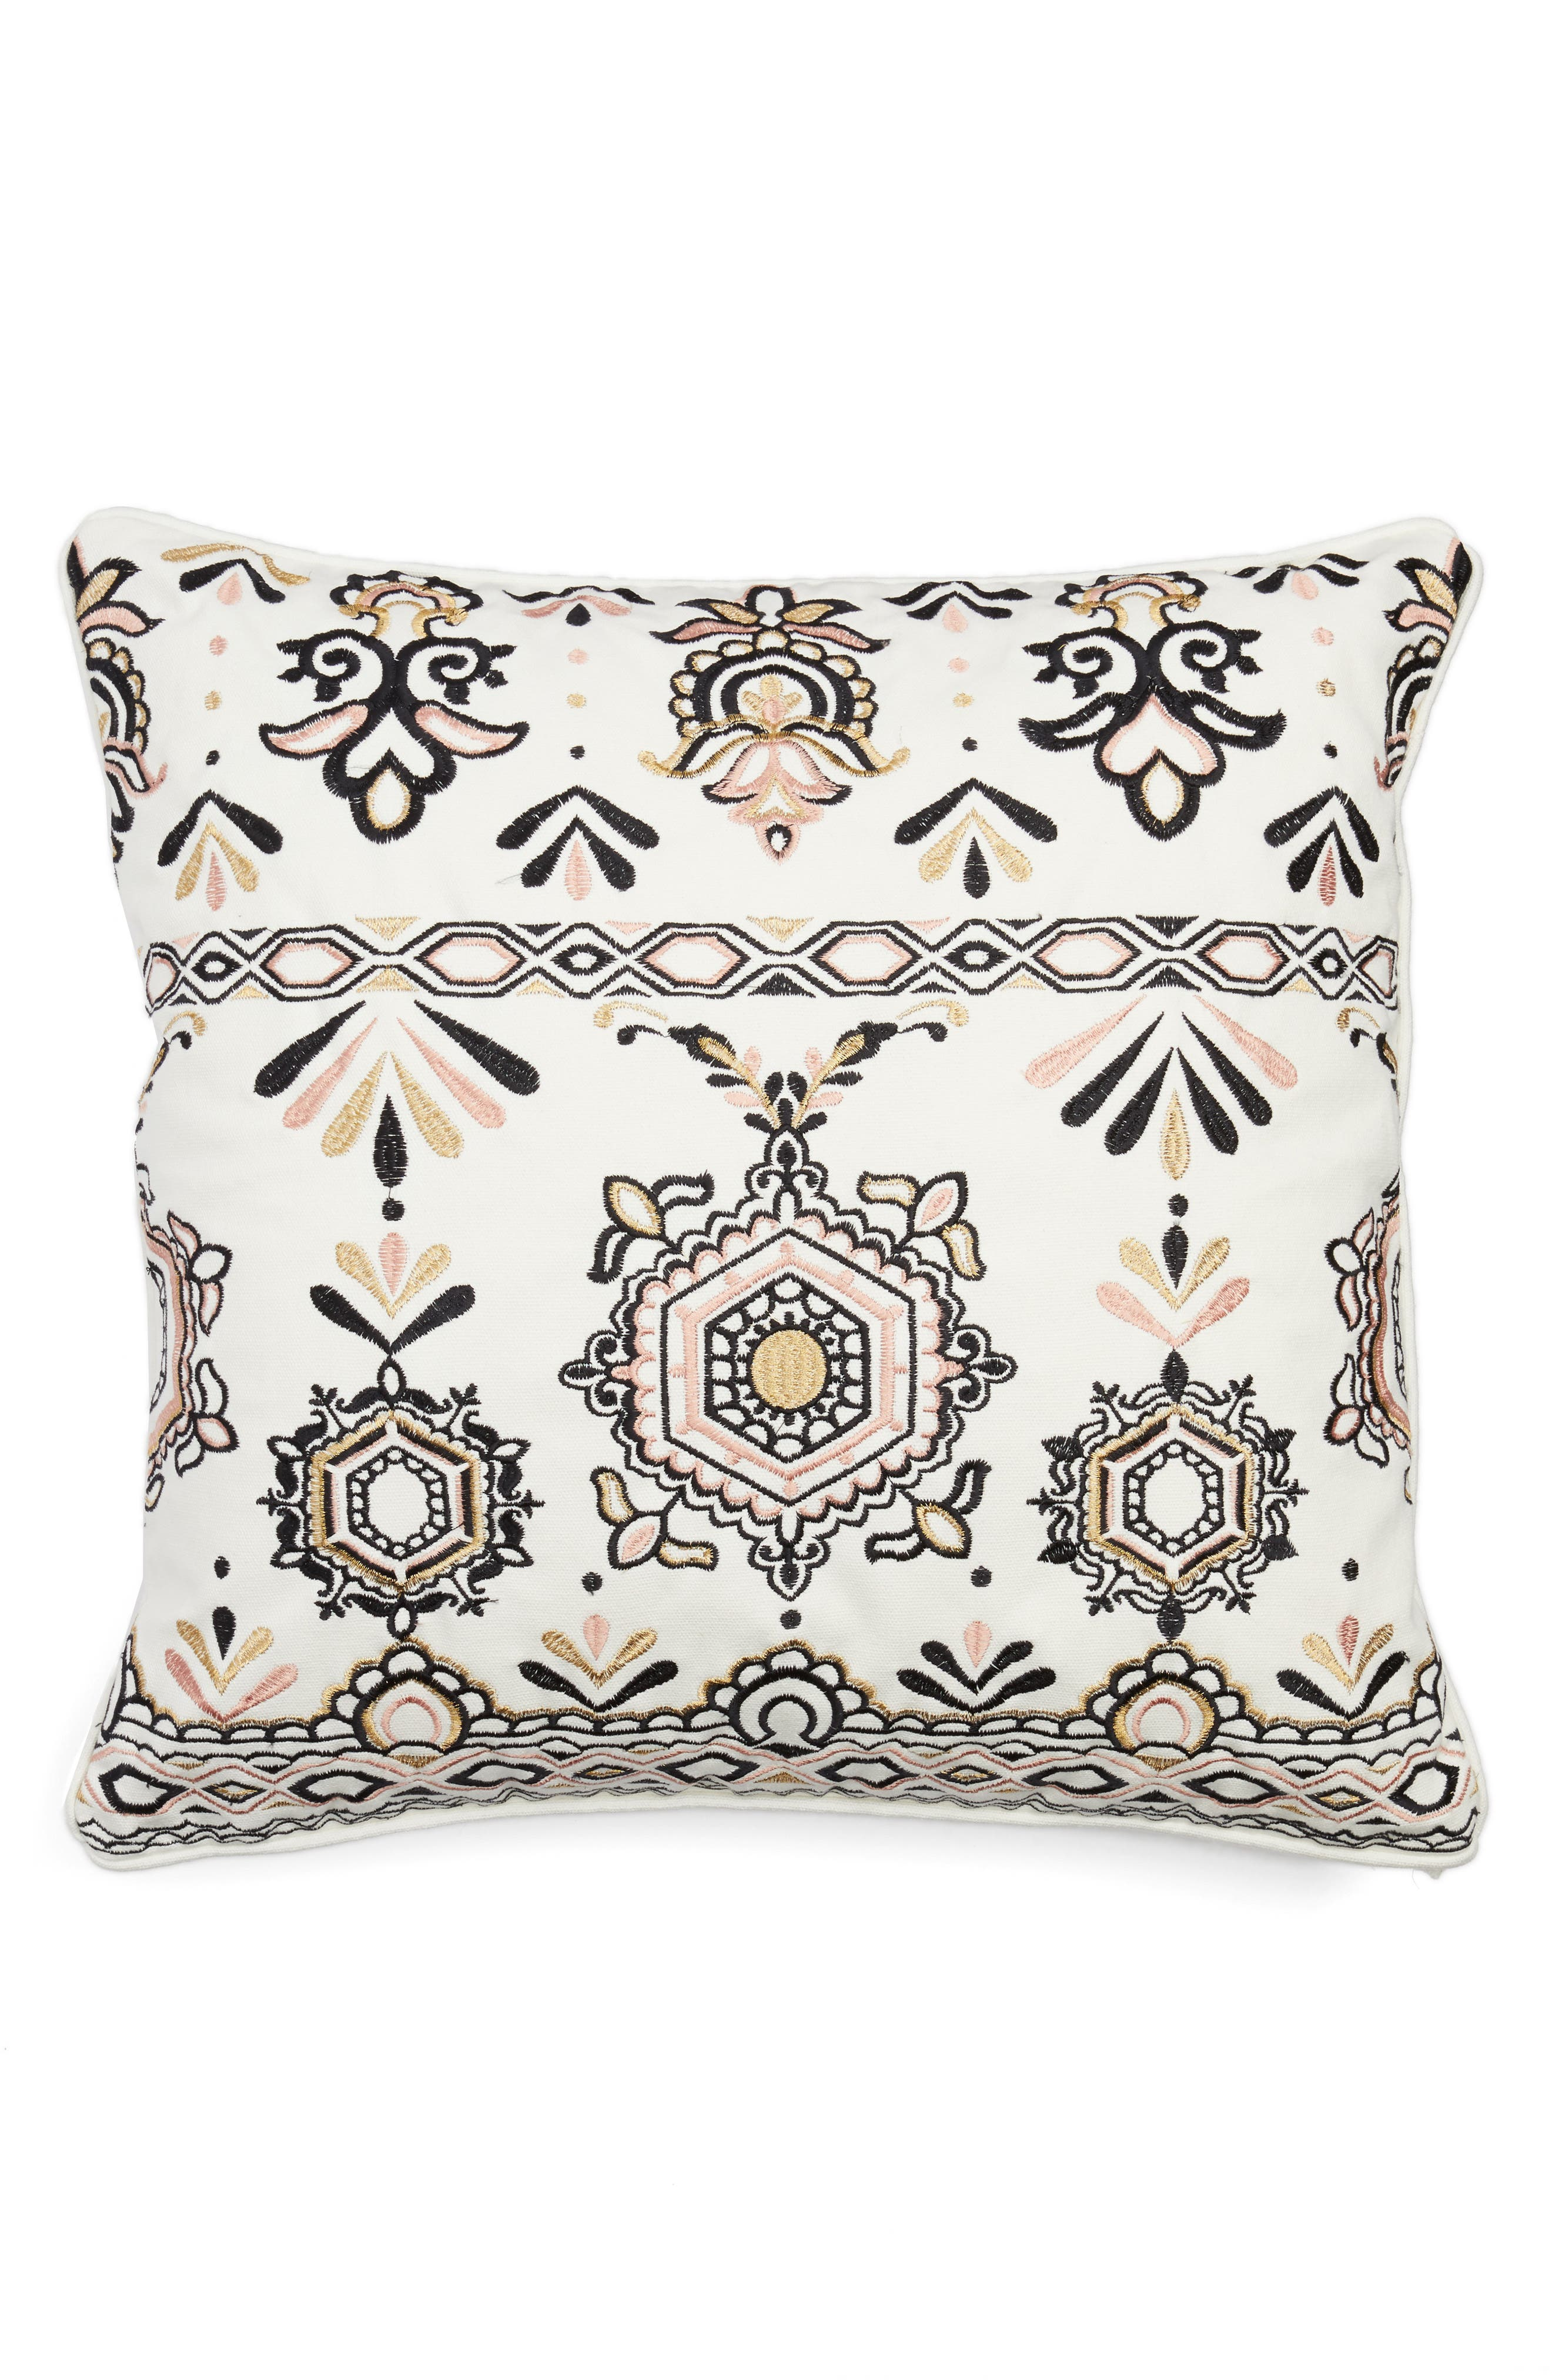 Embroidered Medallion Pillow,                         Main,                         color, White